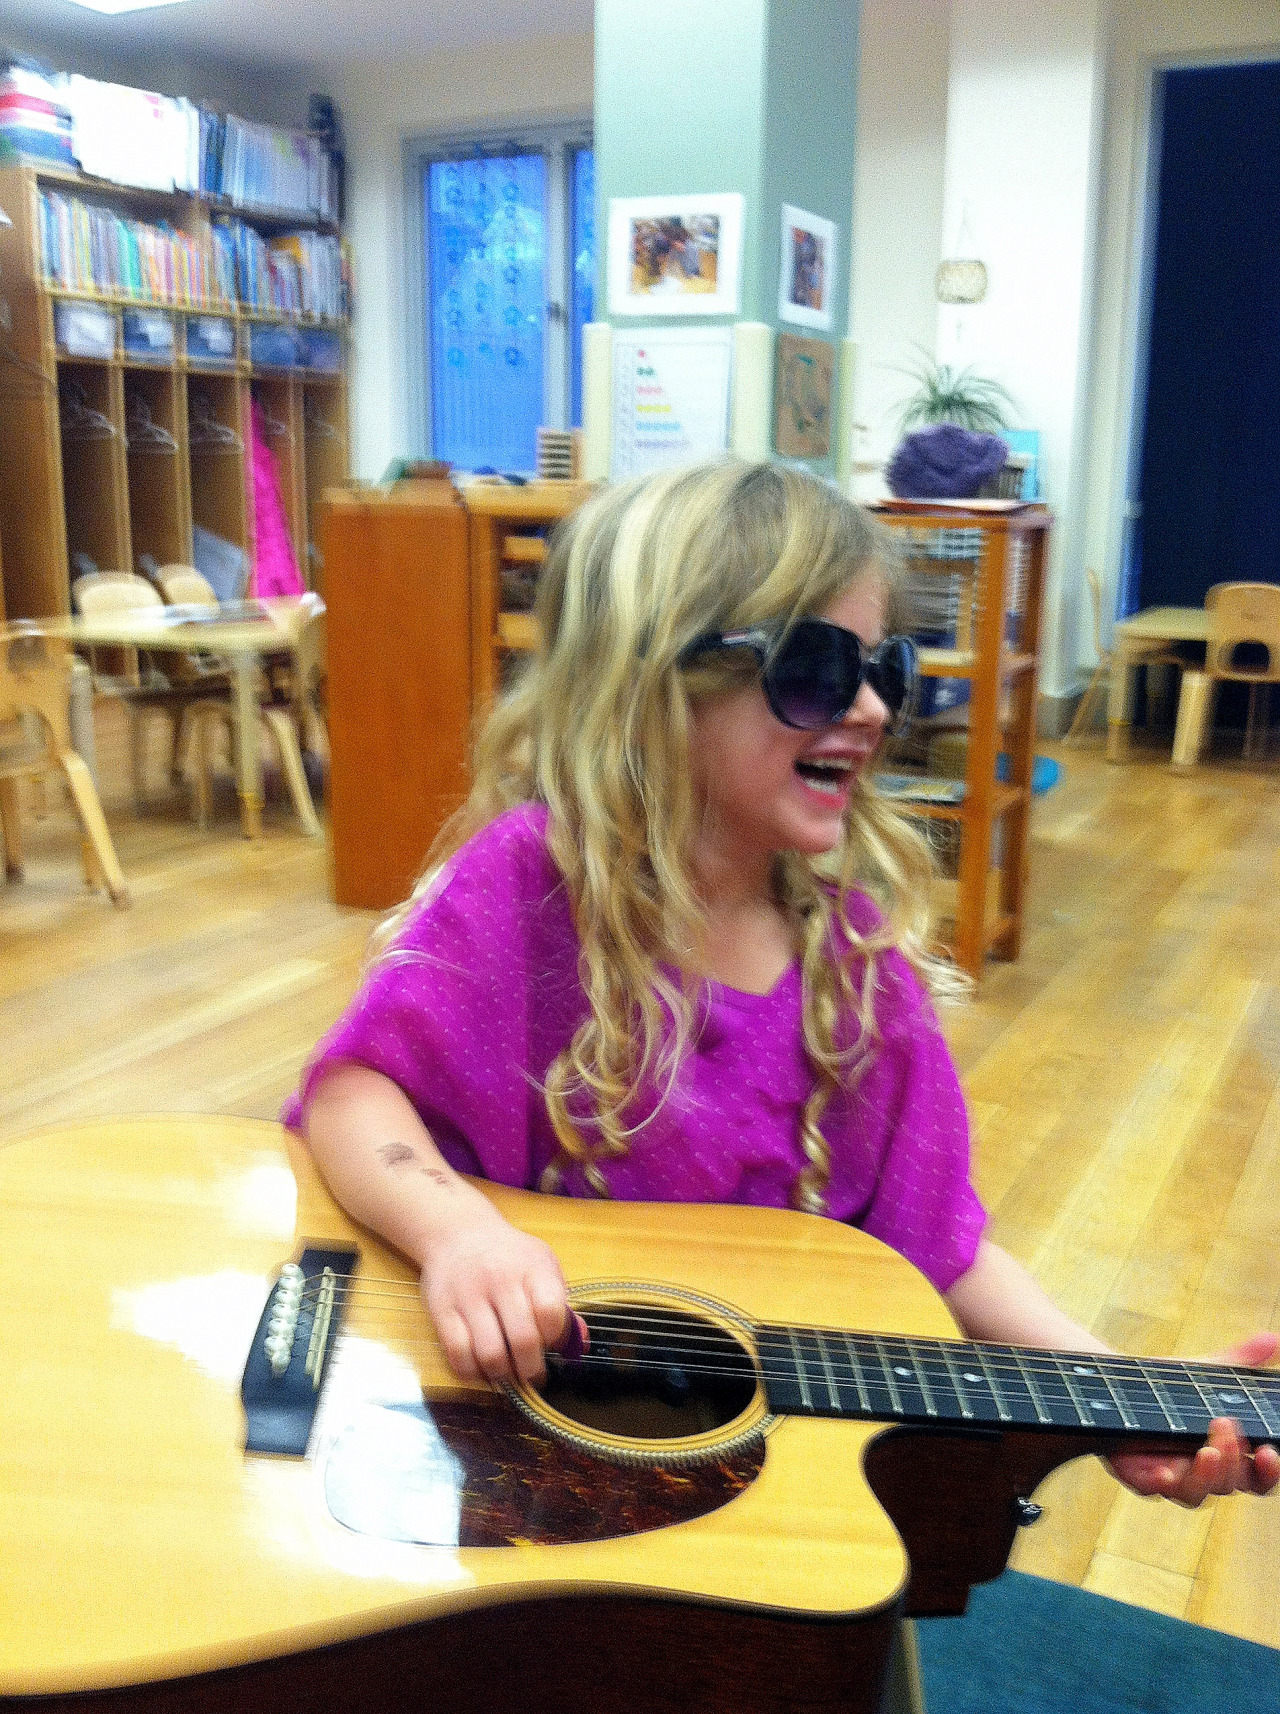 This girl is rockin' cool sunglasses in her guitar class! Rock on.